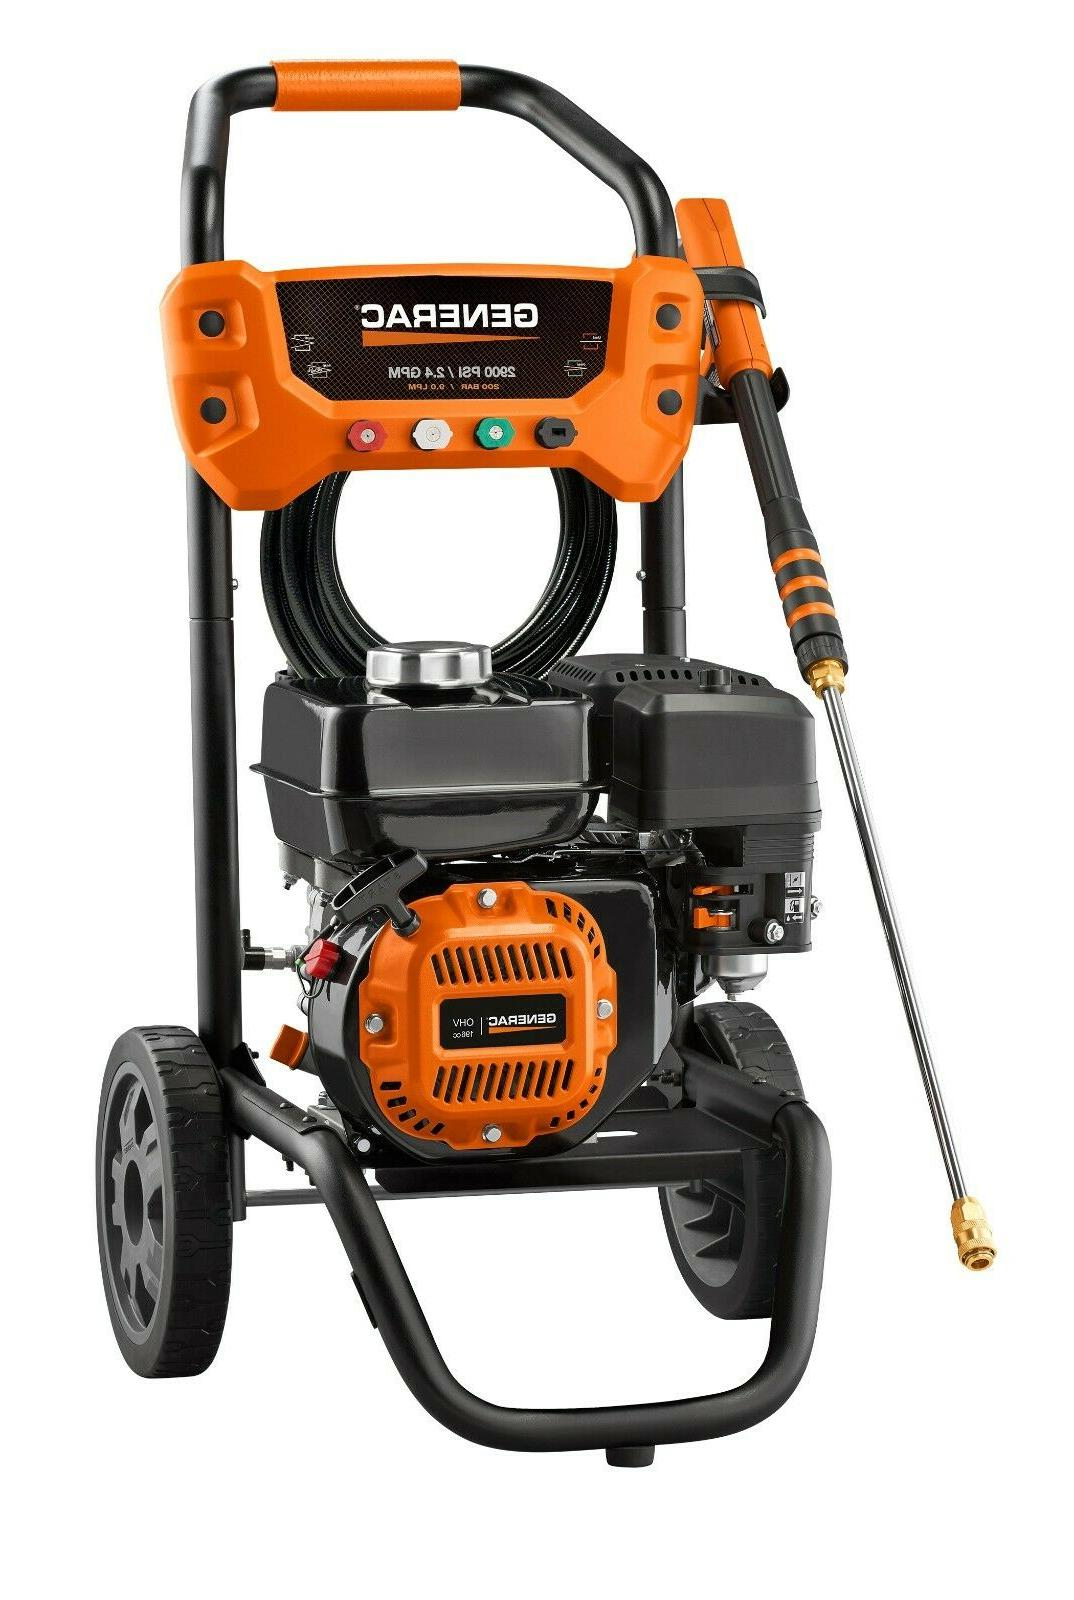 Generac 8874 PSI GPM Residential Pressure Washer